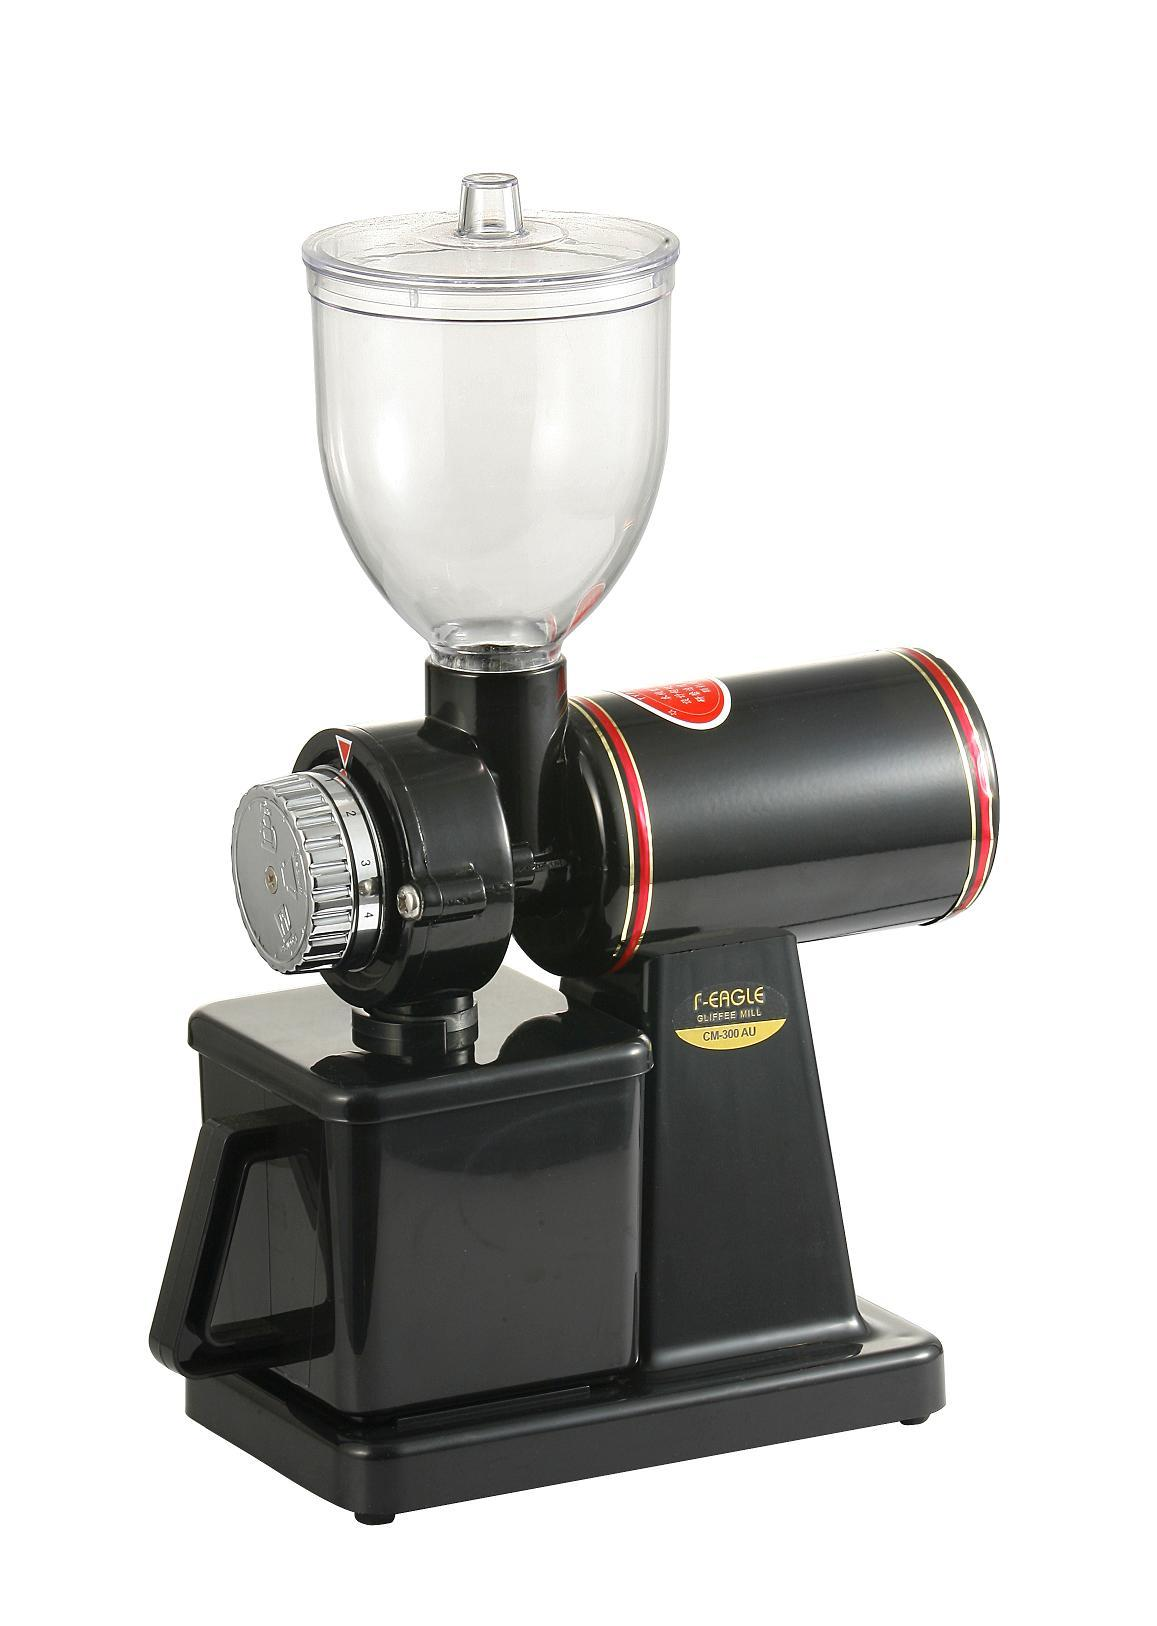 Popular Professional Coffee Grinders-Buy Cheap Professional Coffee Grinders lots from China ...